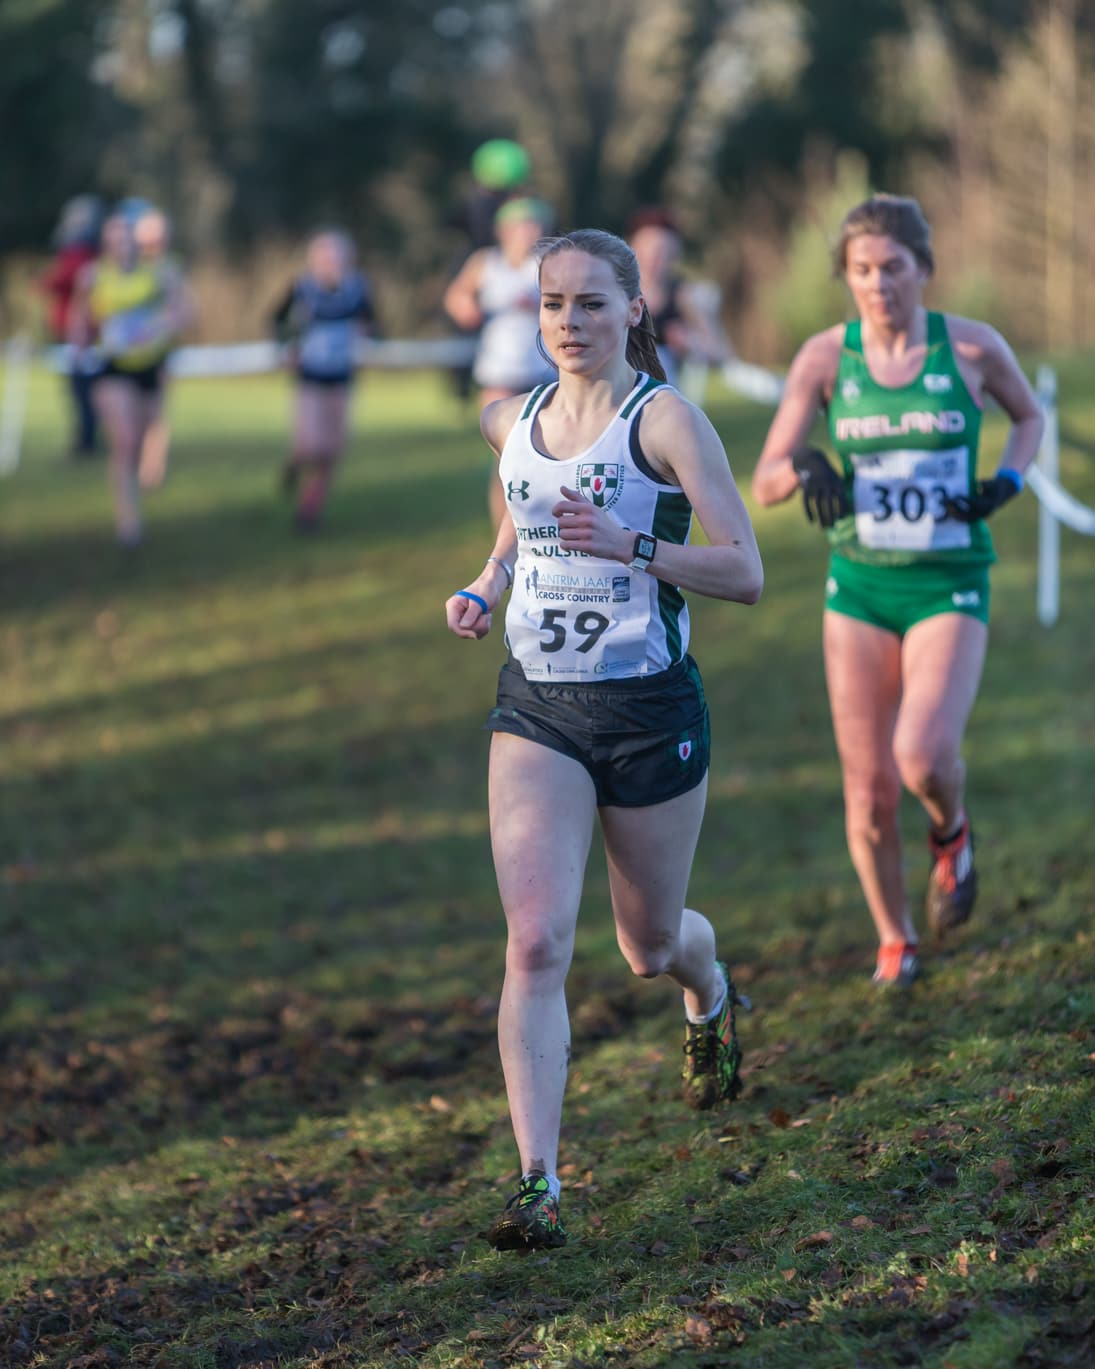 Weekend Preview- NI & Ulster team ready for UK Inter-Counties Cross Country Championships